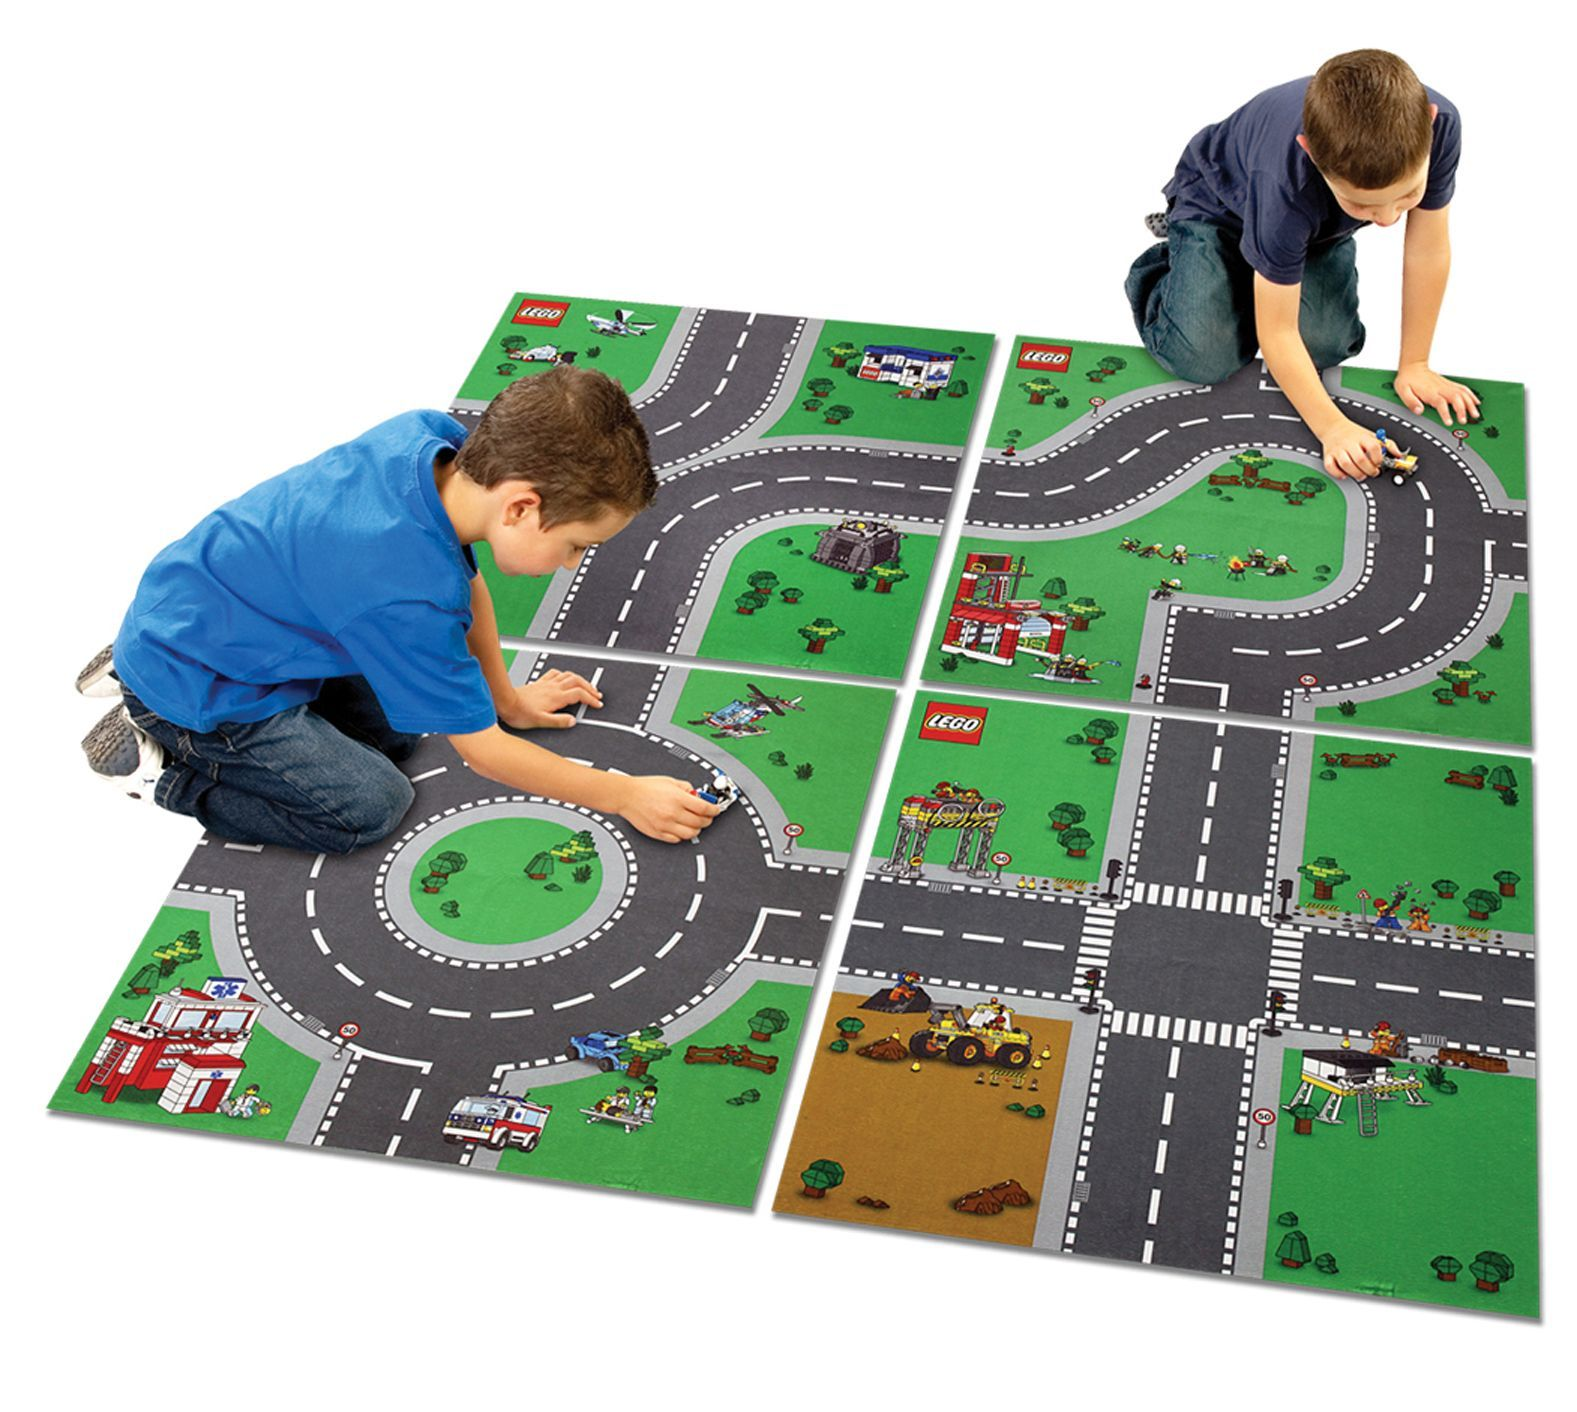 Lego City Playmat 4 Mats Lego City Playmat Play Mat